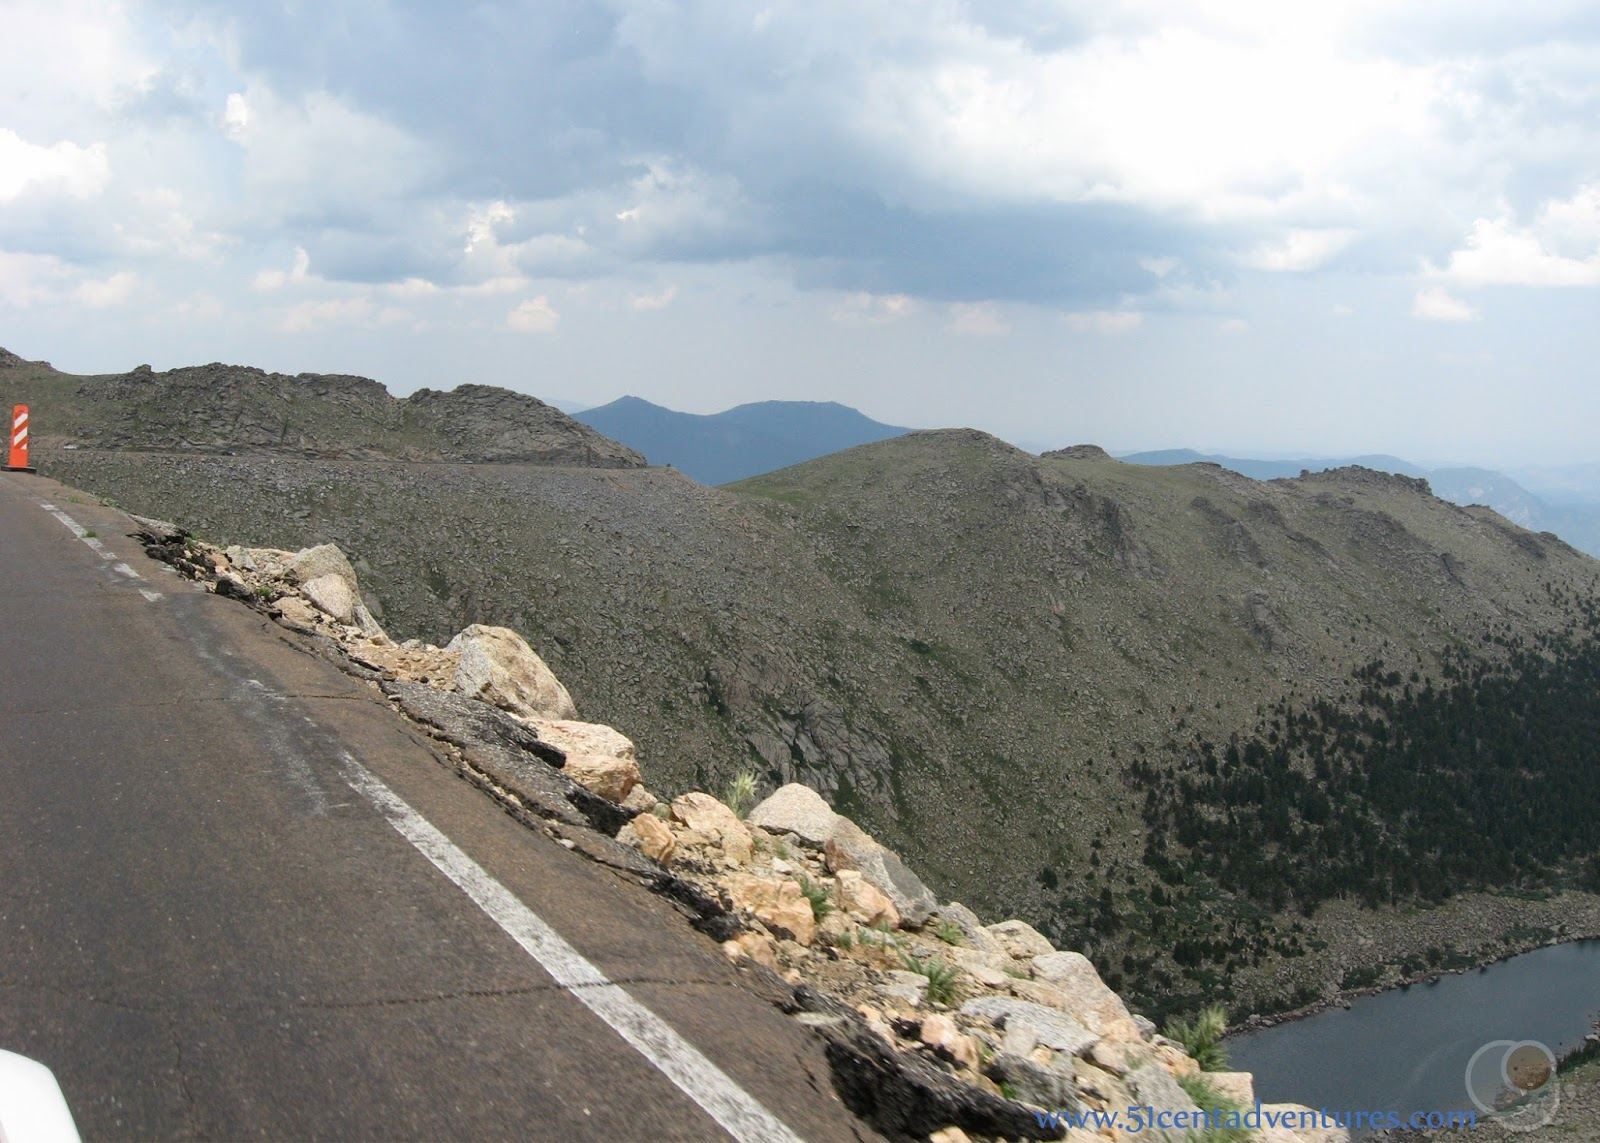 51 Cent Adventures  Mount Evans